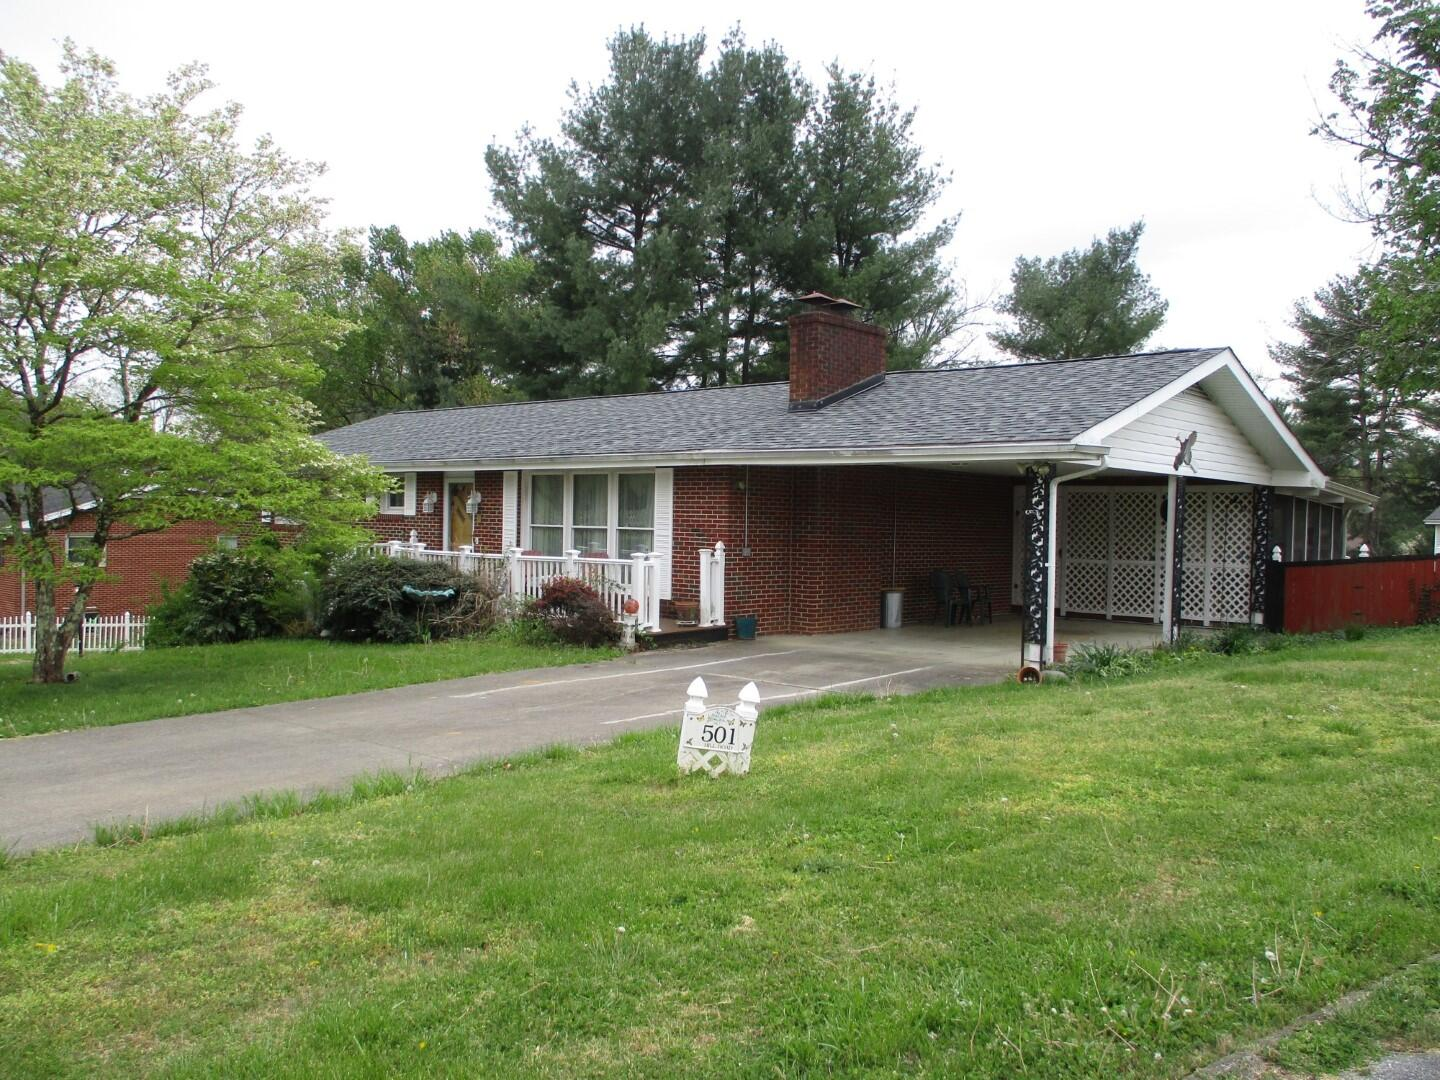 501 Hill Road, Kingsport, Tennessee 37664, 4 Bedrooms Bedrooms, ,3 BathroomsBathrooms,Single Family,For Sale,501 Hill Road,1,9921711